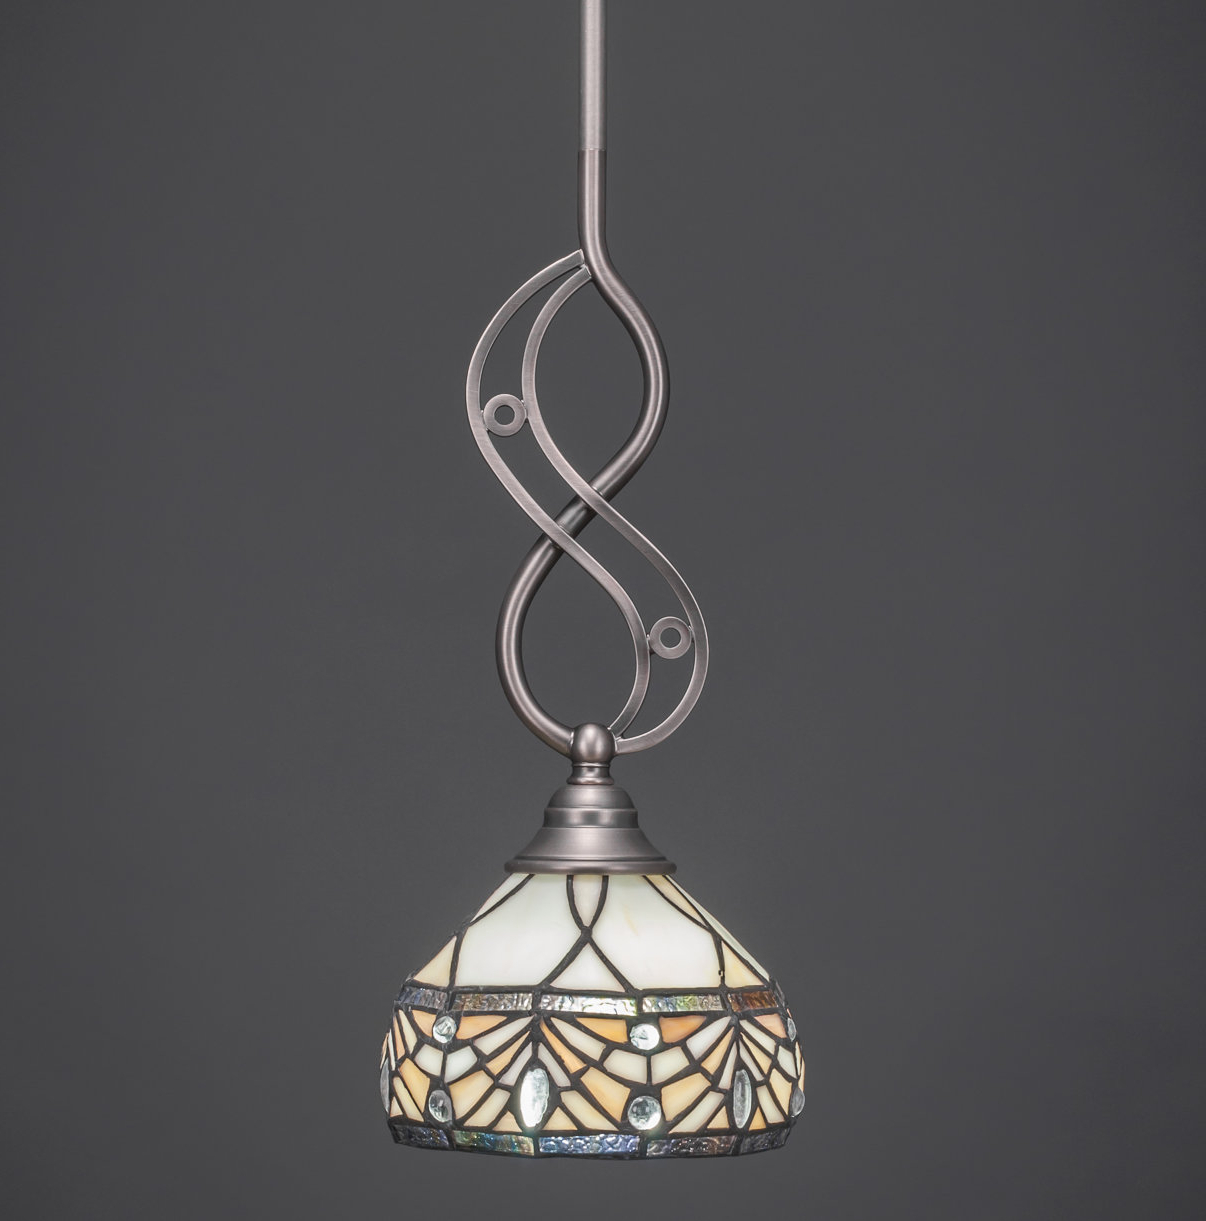 [%Fleur De Lis Living Pendant Lighting Sale – Up To 65% Off Within Most Current Willems 1 Light Single Drum Pendants|Willems 1 Light Single Drum Pendants Intended For Famous Fleur De Lis Living Pendant Lighting Sale – Up To 65% Off|Most Recently Released Willems 1 Light Single Drum Pendants Inside Fleur De Lis Living Pendant Lighting Sale – Up To 65% Off|Favorite Fleur De Lis Living Pendant Lighting Sale – Up To 65% Off Regarding Willems 1 Light Single Drum Pendants%] (View 3 of 20)